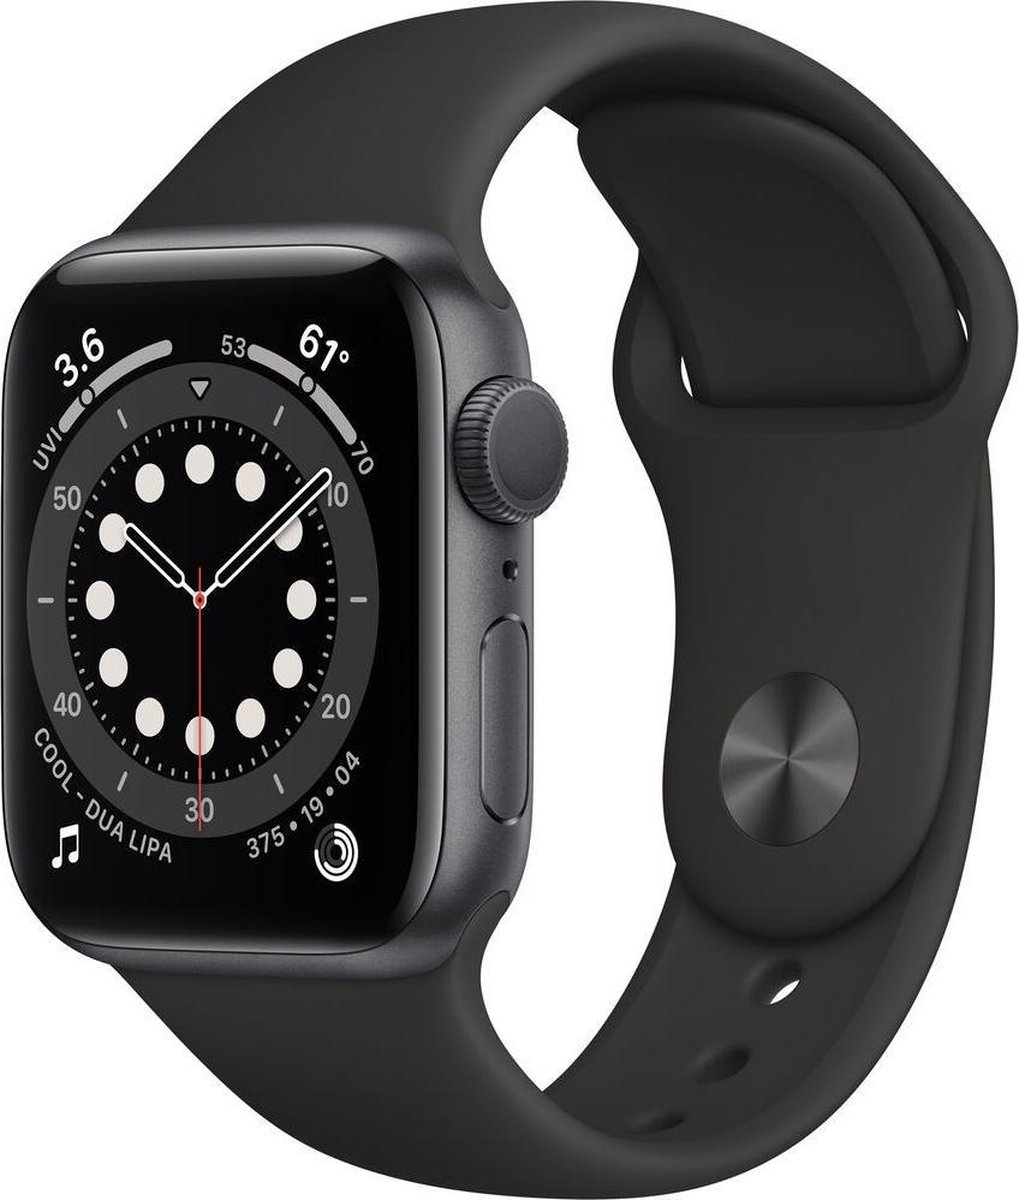 Apple Watch Series 6 – Gerenoveerd door SUPREME MOBILE – A GRADE – 40 mm – GPS – Spacegrijs / zwarte band